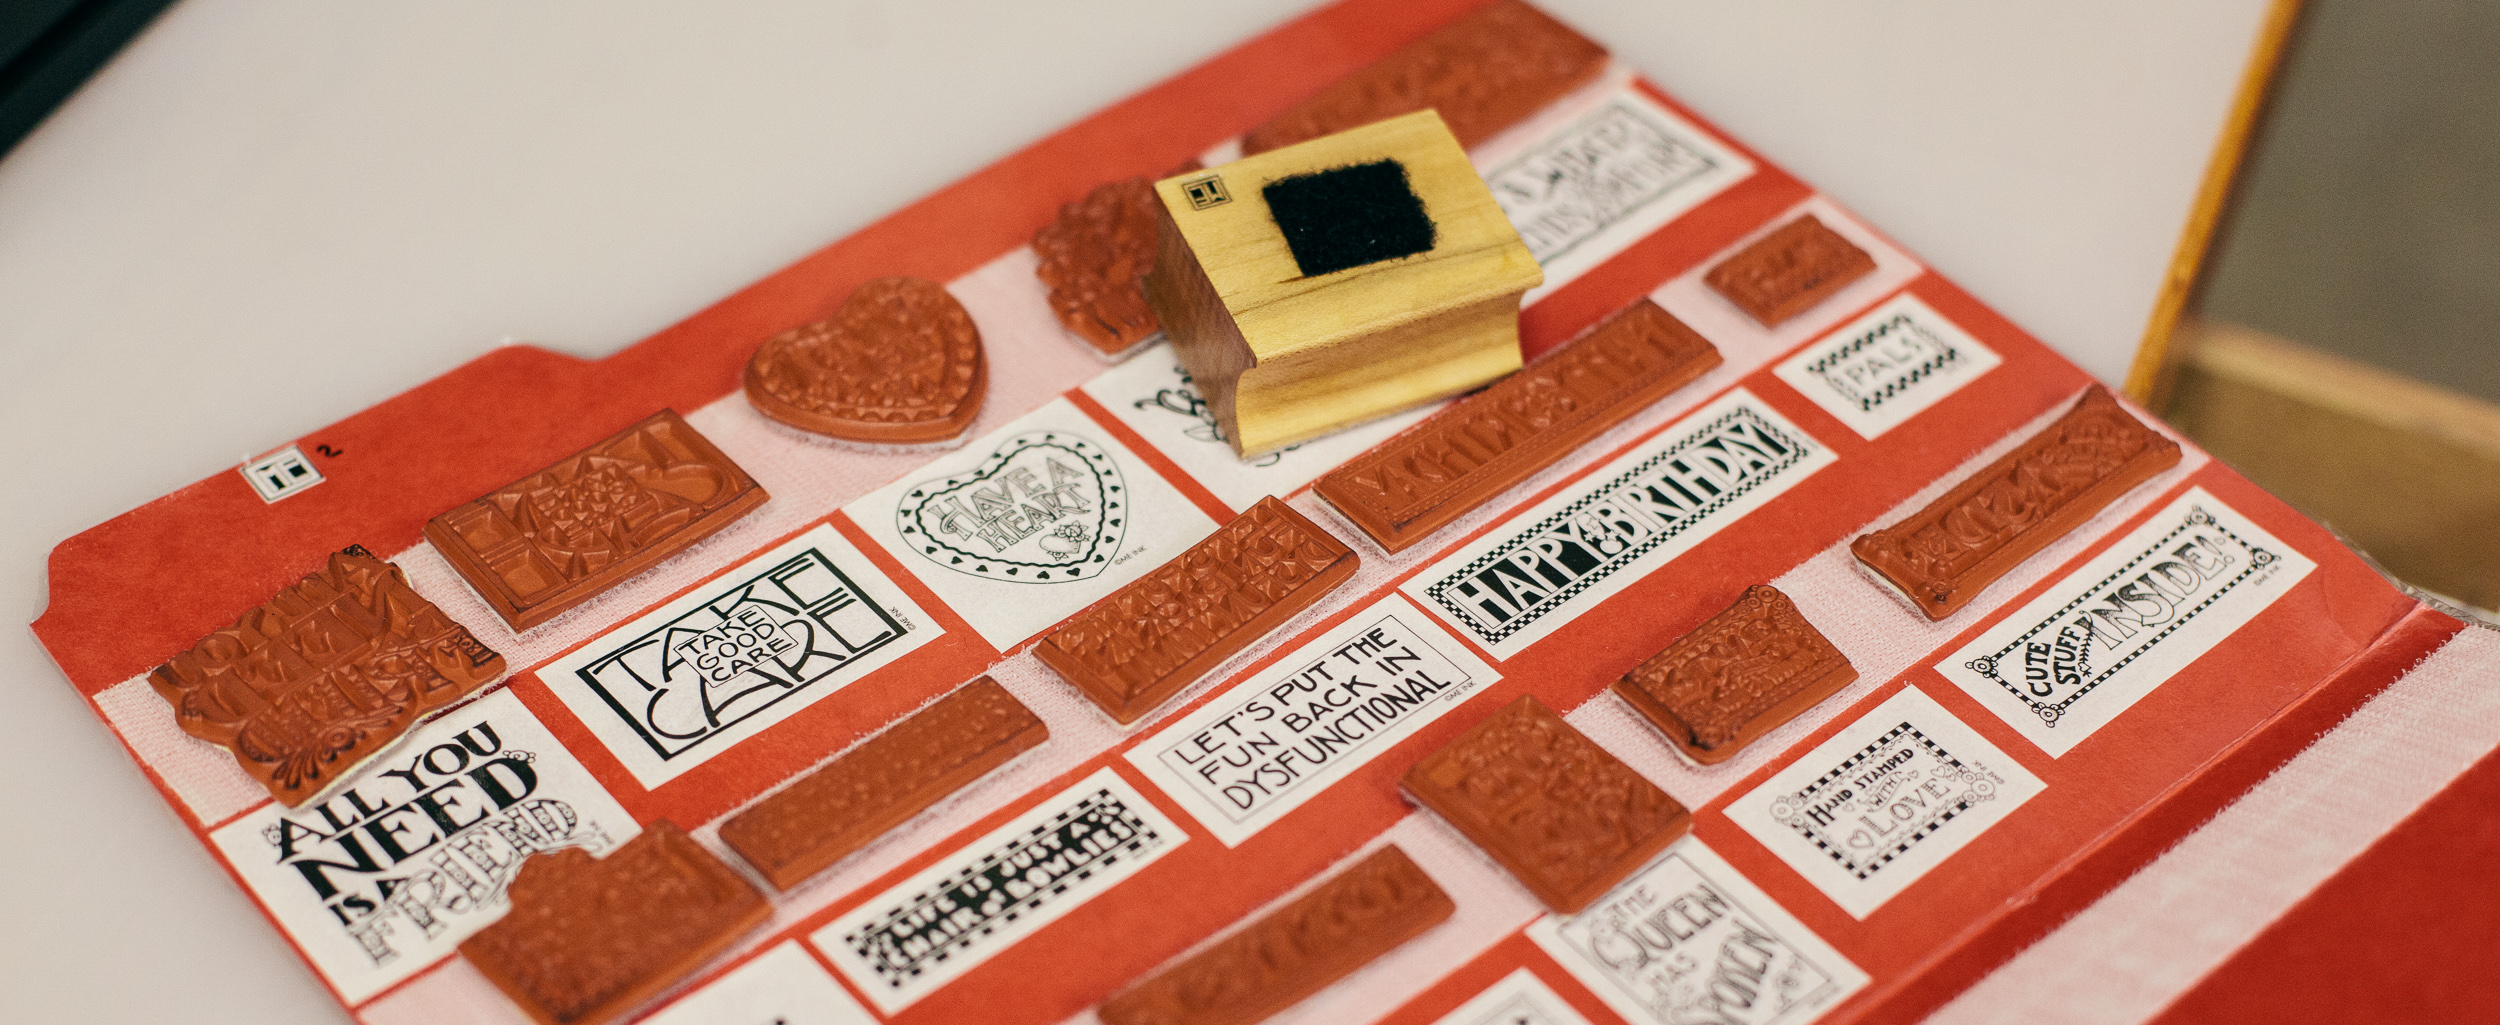 How To Organize Your Stamps And Stamping Equipment